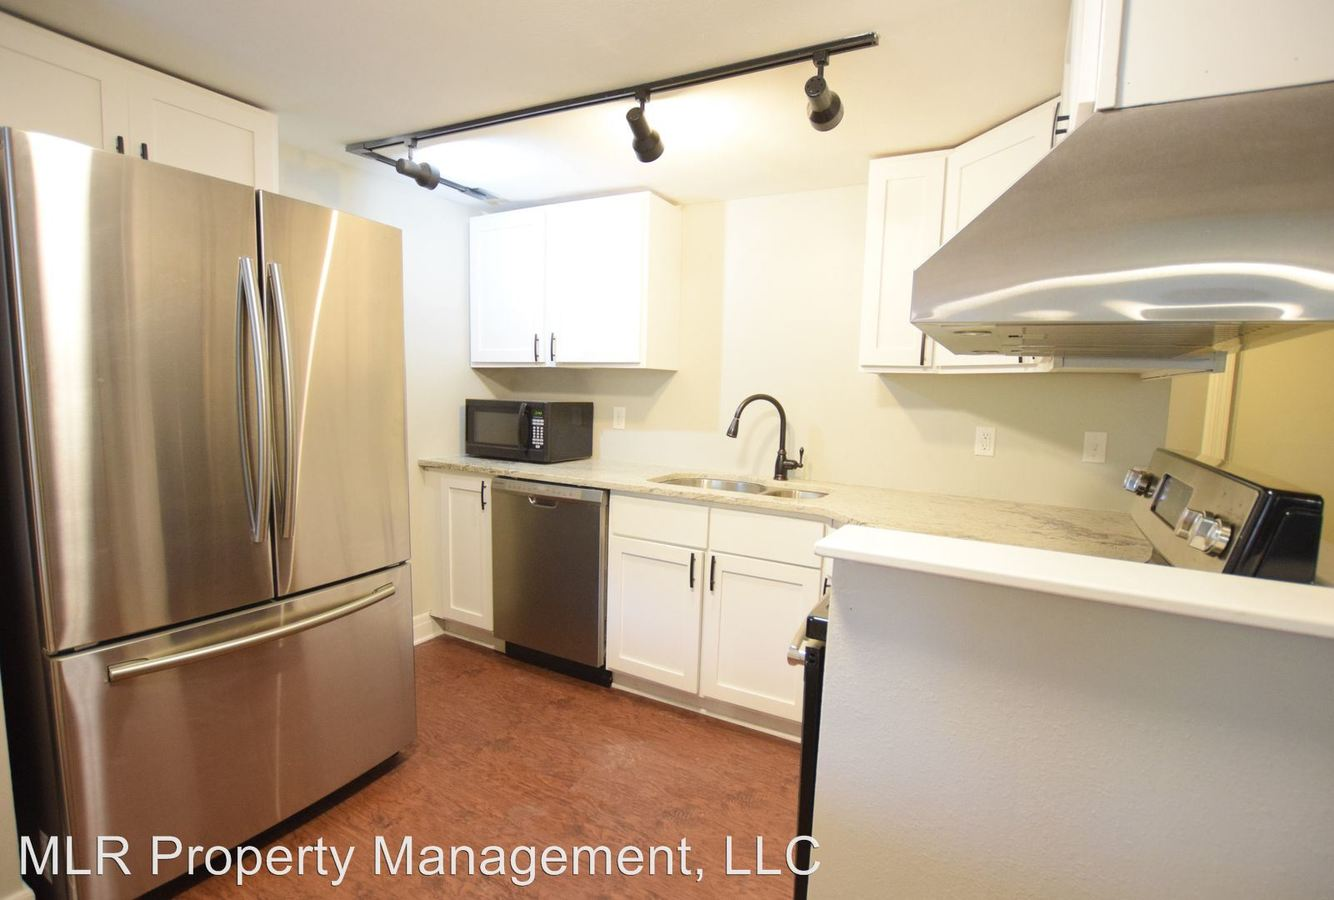 3 Bedrooms 2 Bathrooms Apartment for rent at Ithaca, Ny in Ithaca, NY